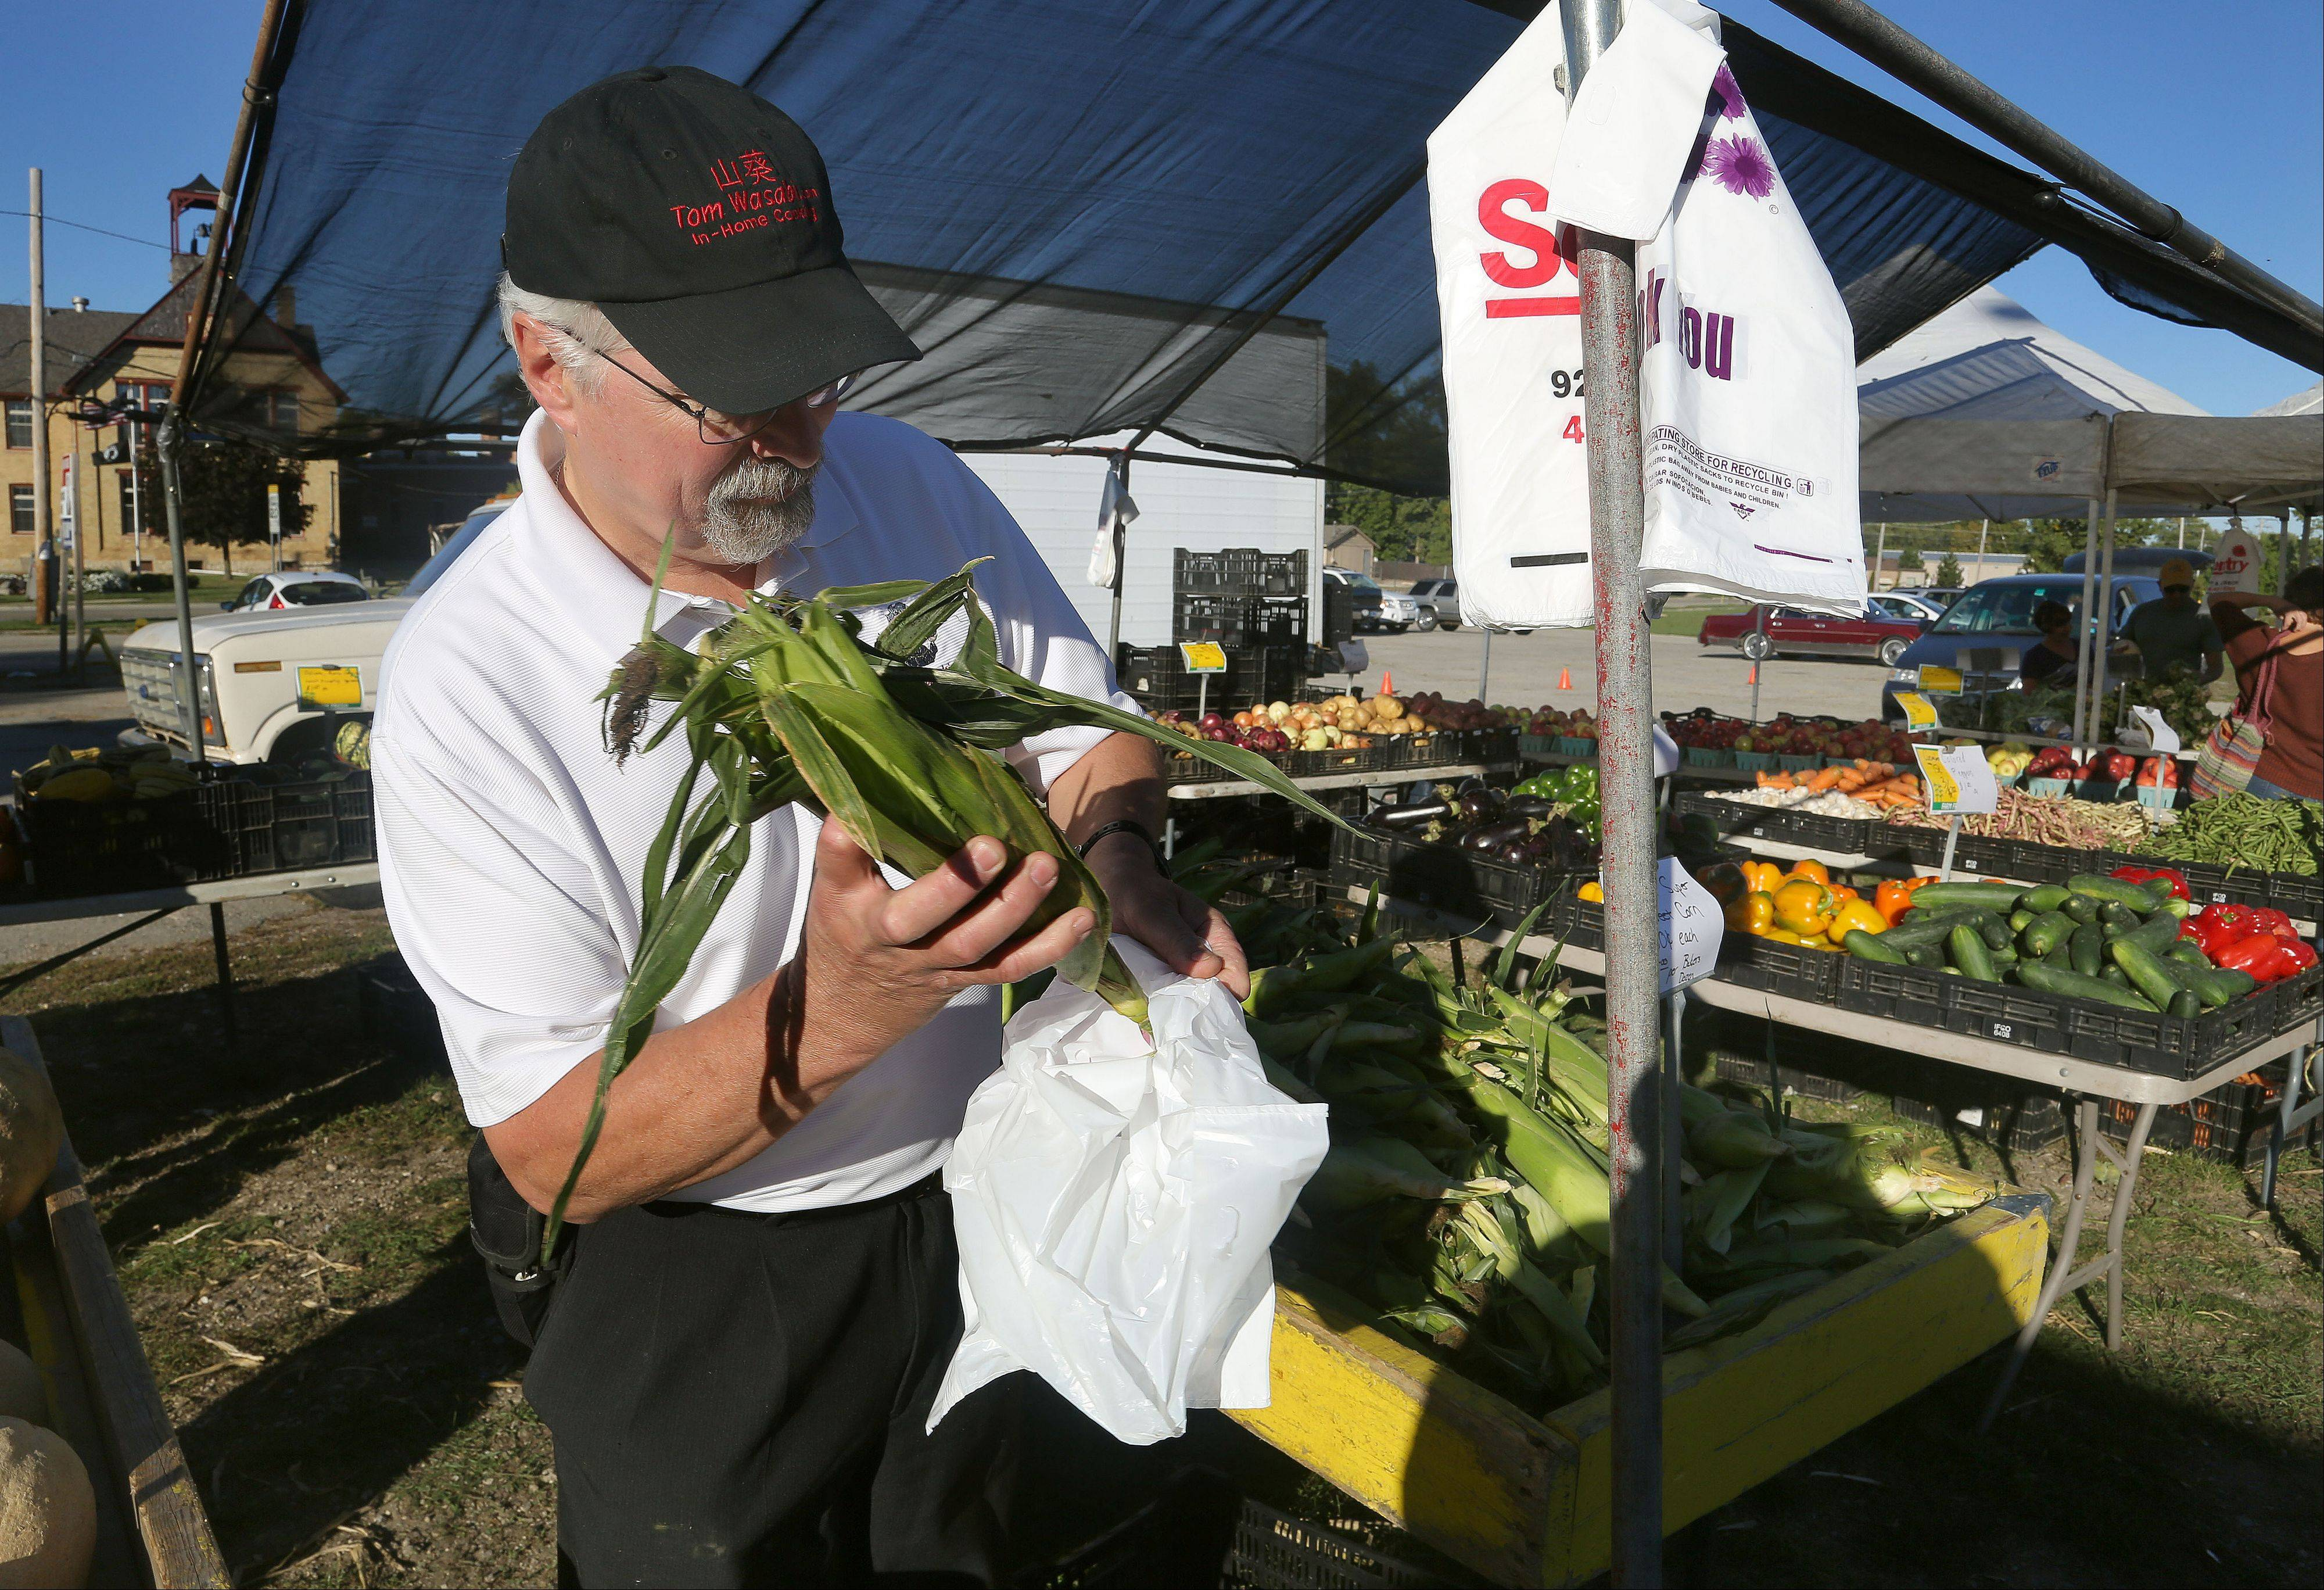 Thomas Craner of Antioch shops for sweet corn at the Antioch farmers market. He teaches students of this Tom Wasabi In-Home Cooking School to opt for fresh ingredients over processed foods.